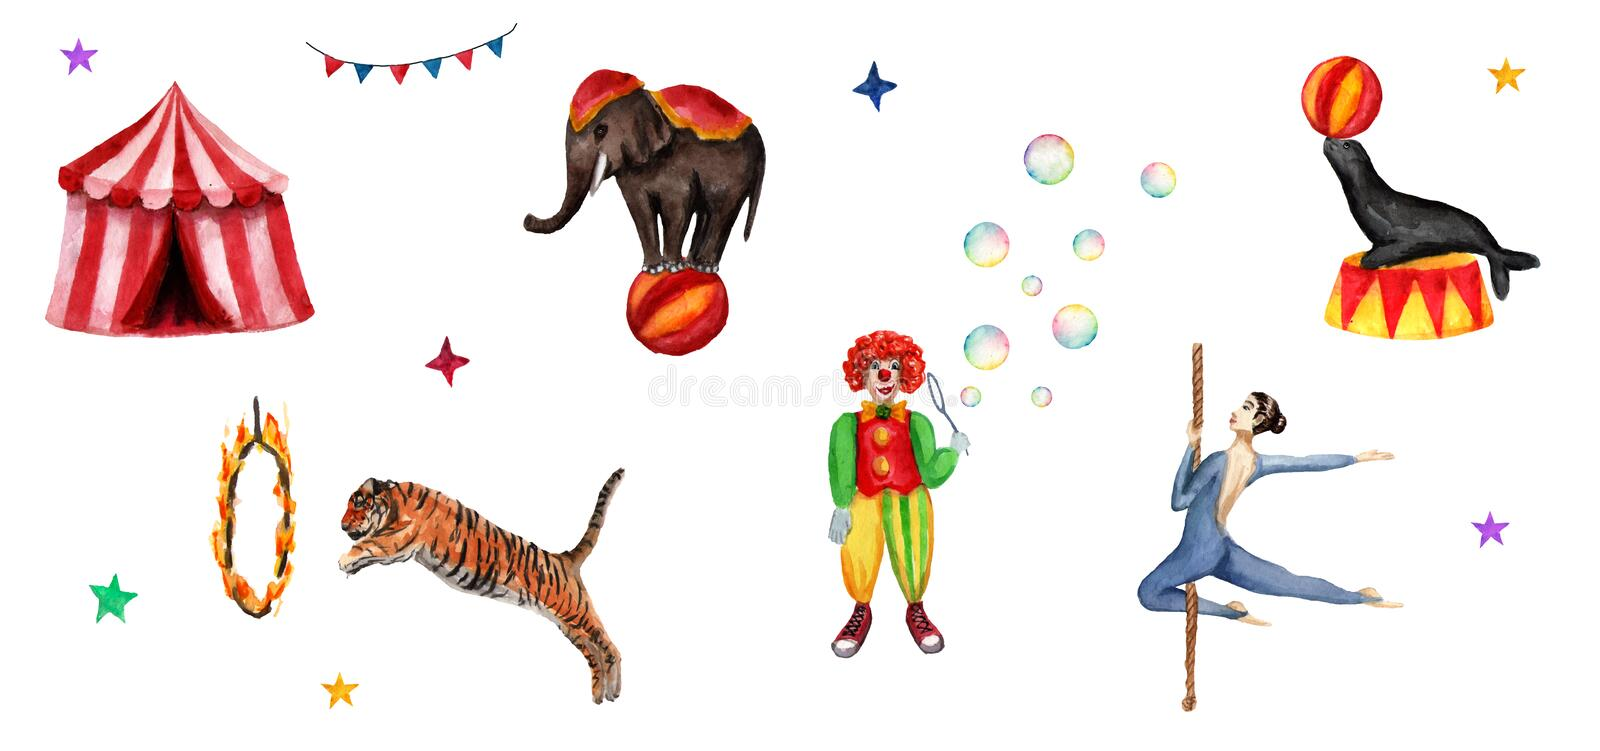 Circus set elements, elephant, clown, seal, tiger, tent, flags, soap bubbles, fire ring and an acrobat. Watercolor illustration vector illustration